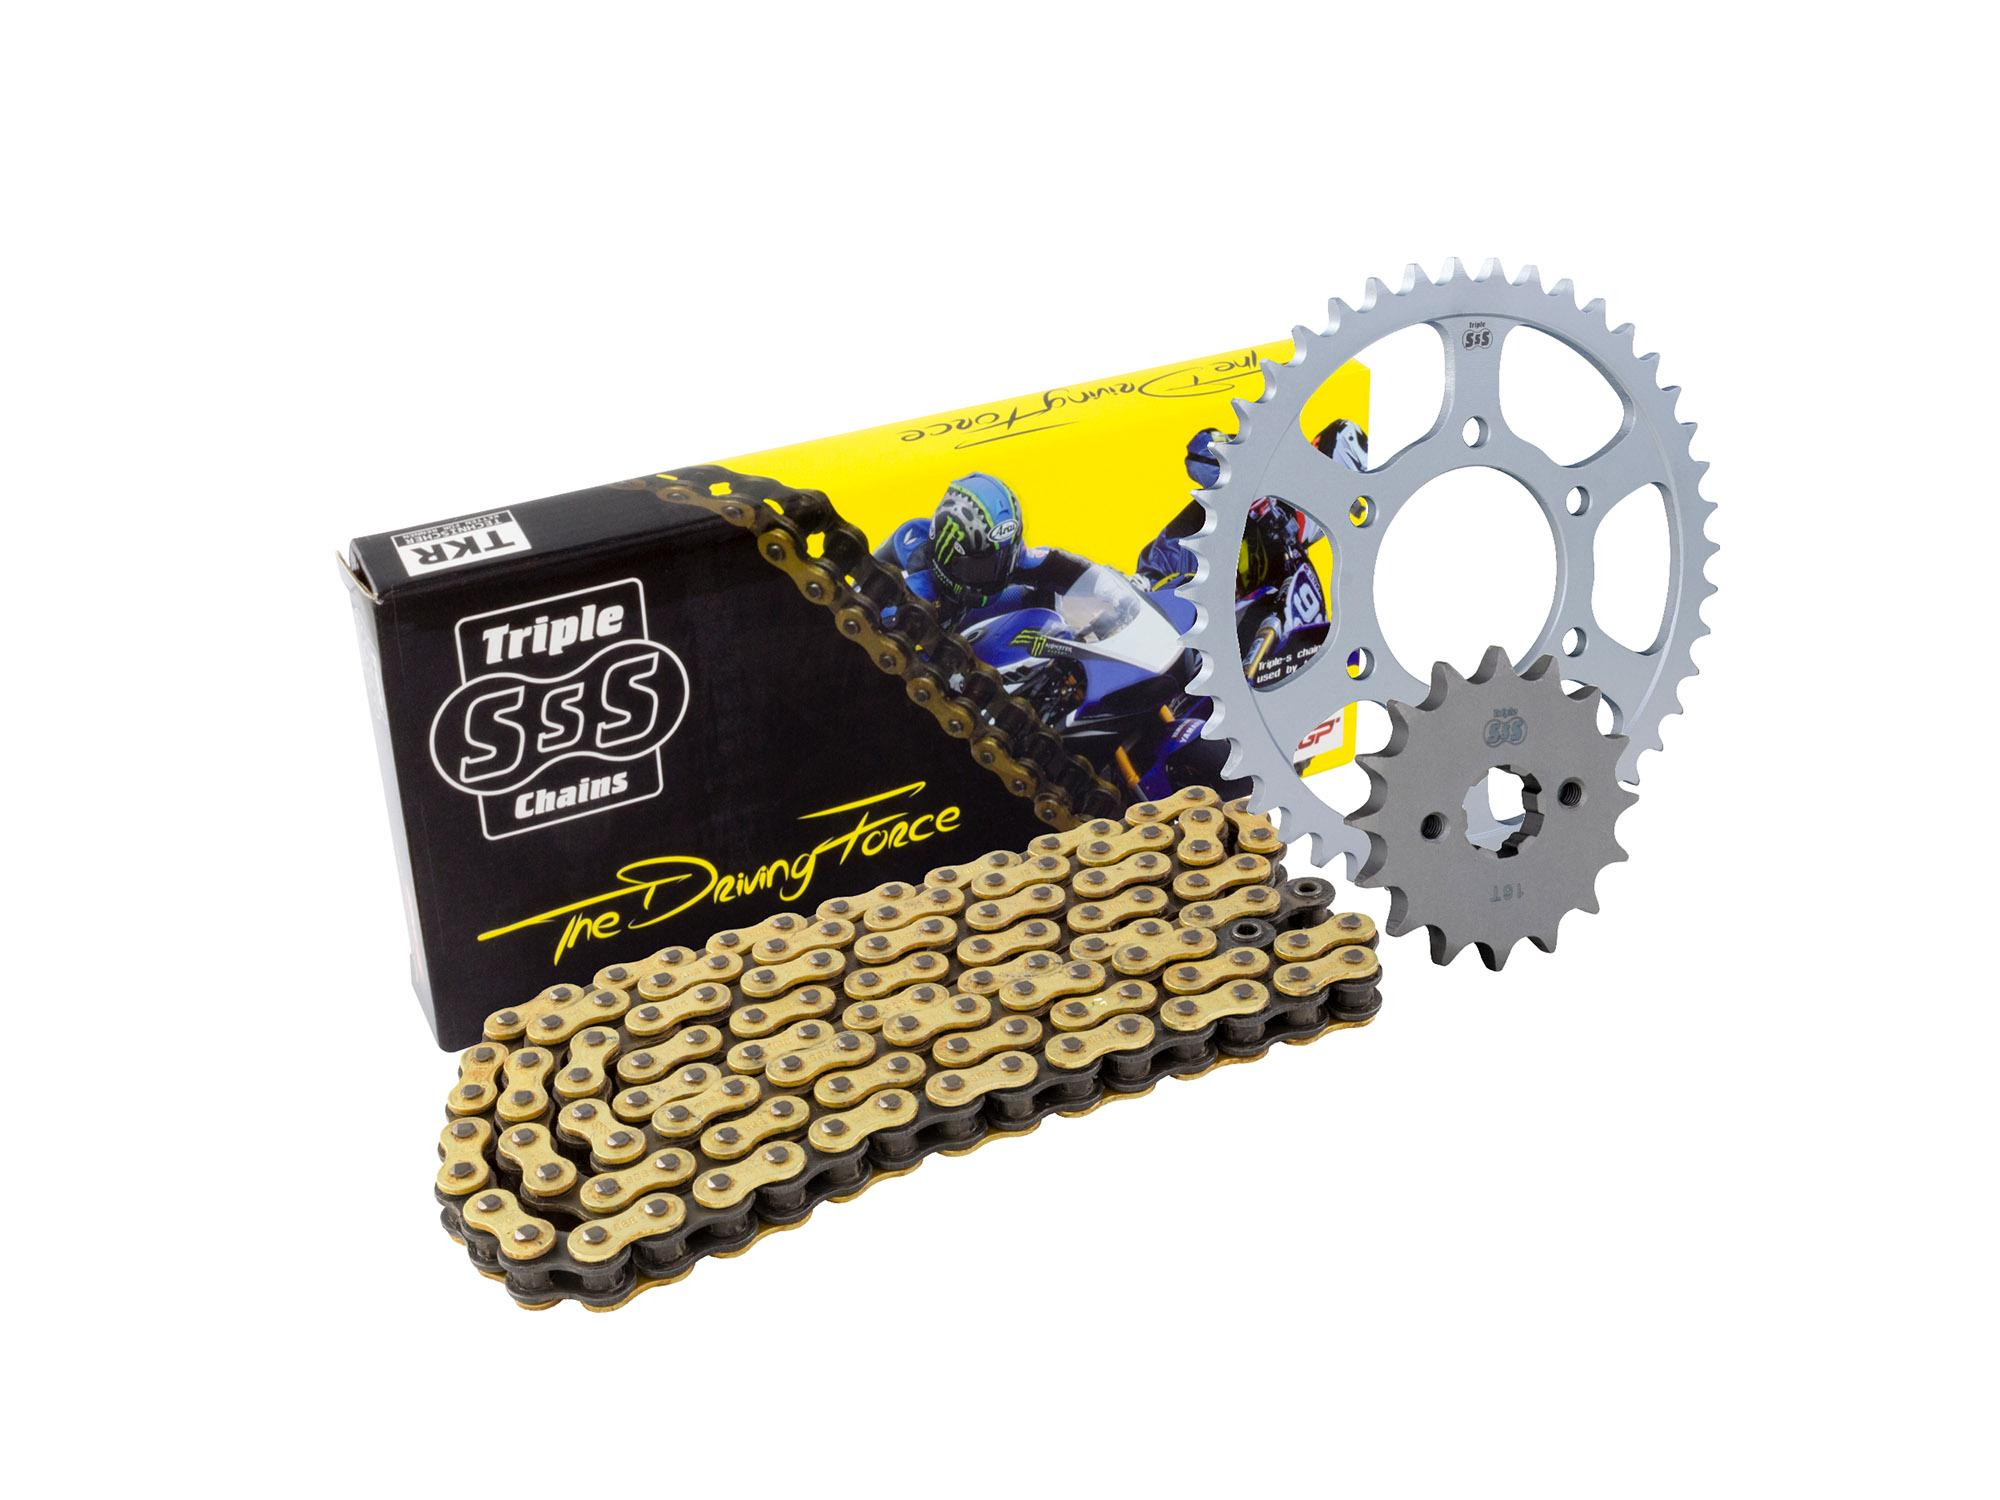 Kawasaki ZZ-R1200 C1-C4 02-05 Chain & Sprocket Kit: 17T Front, 44T Rear, HD O-Ring Gold Chain 530H 112 Link